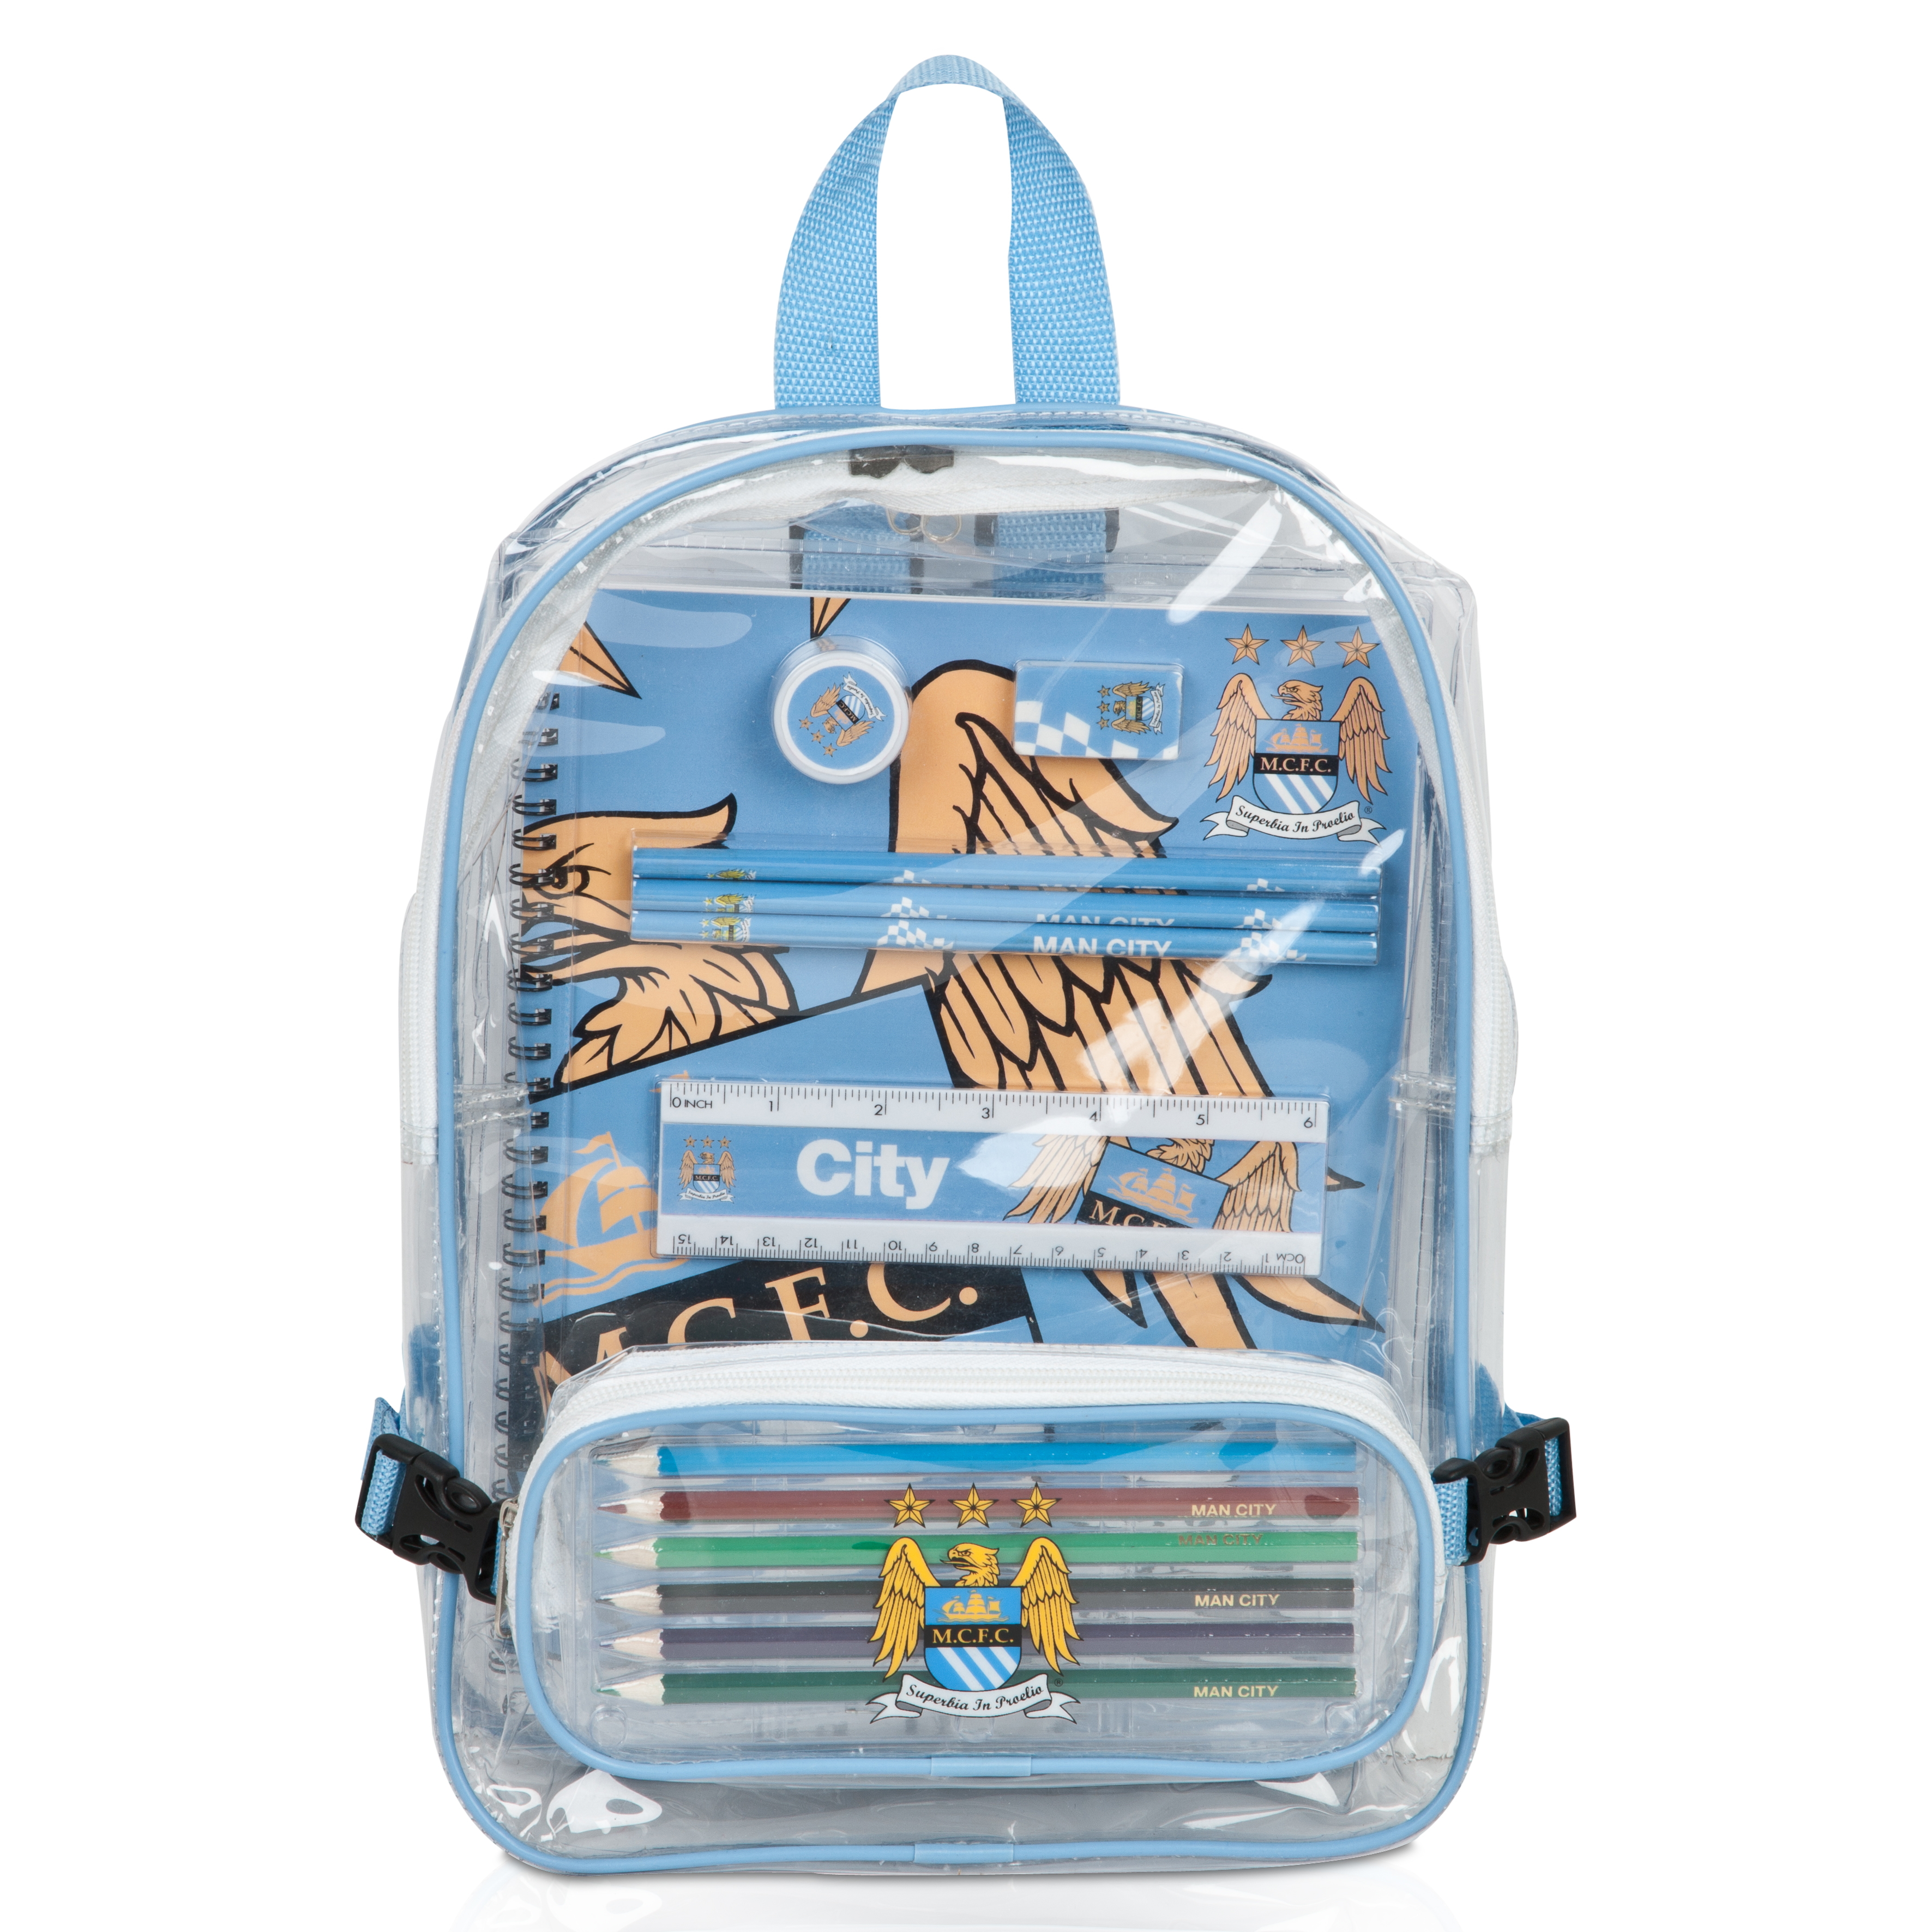 Manchester City Backpack Stationery Set